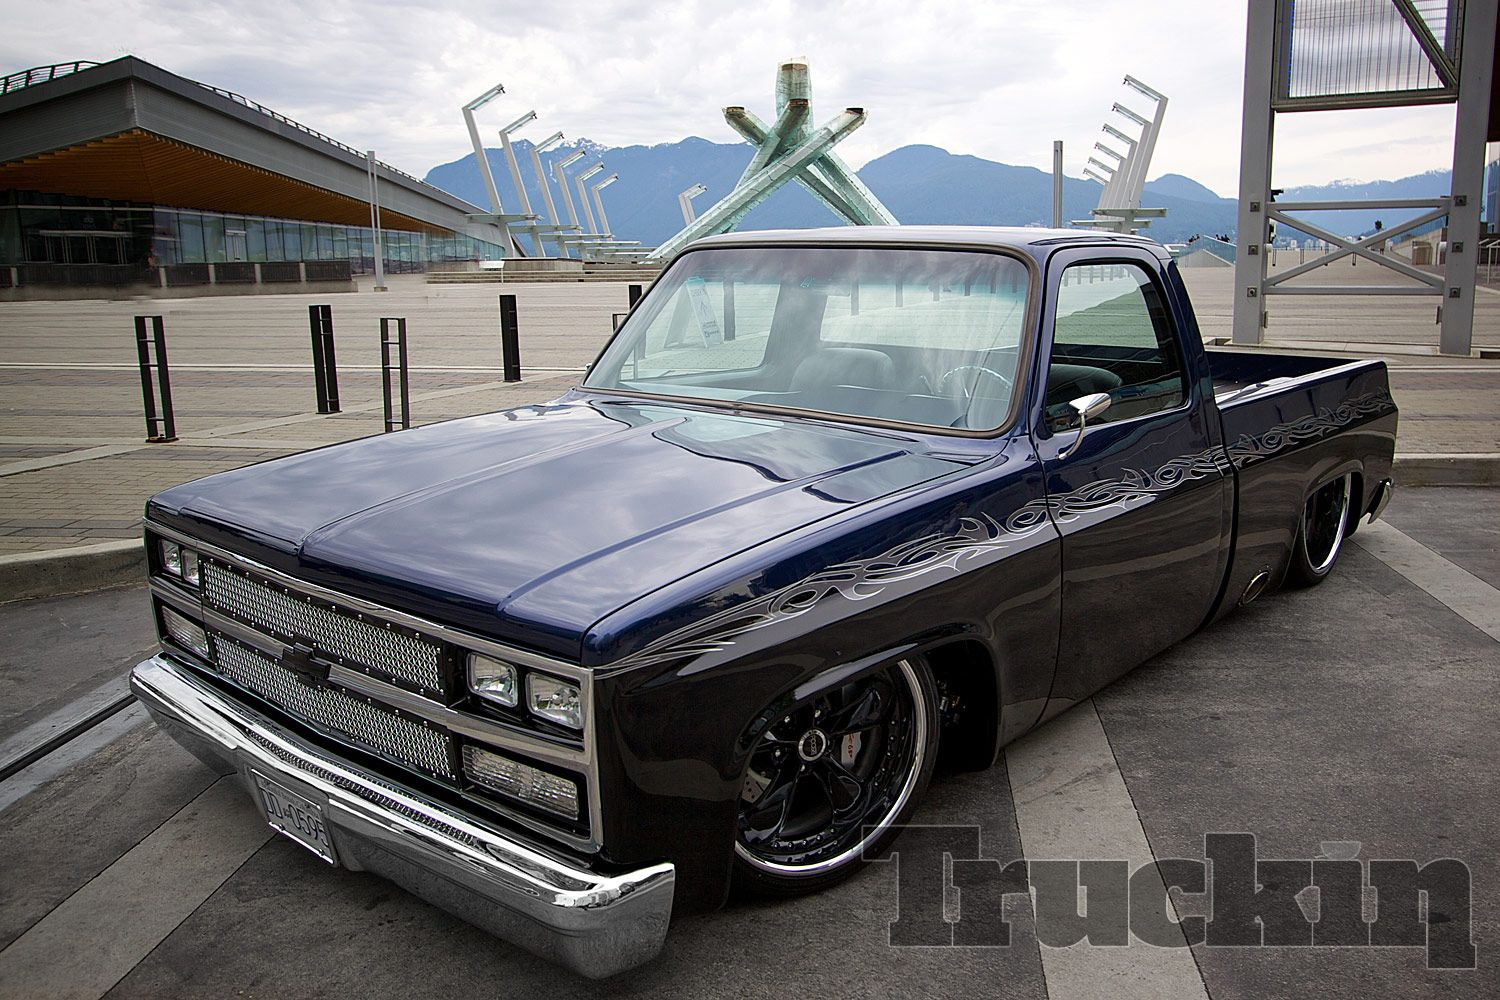 All Chevy chevy 1986 c10 : murdered out c10 | 1986 Gmc C10 Cover Truck Web Extras Photo 21 ...